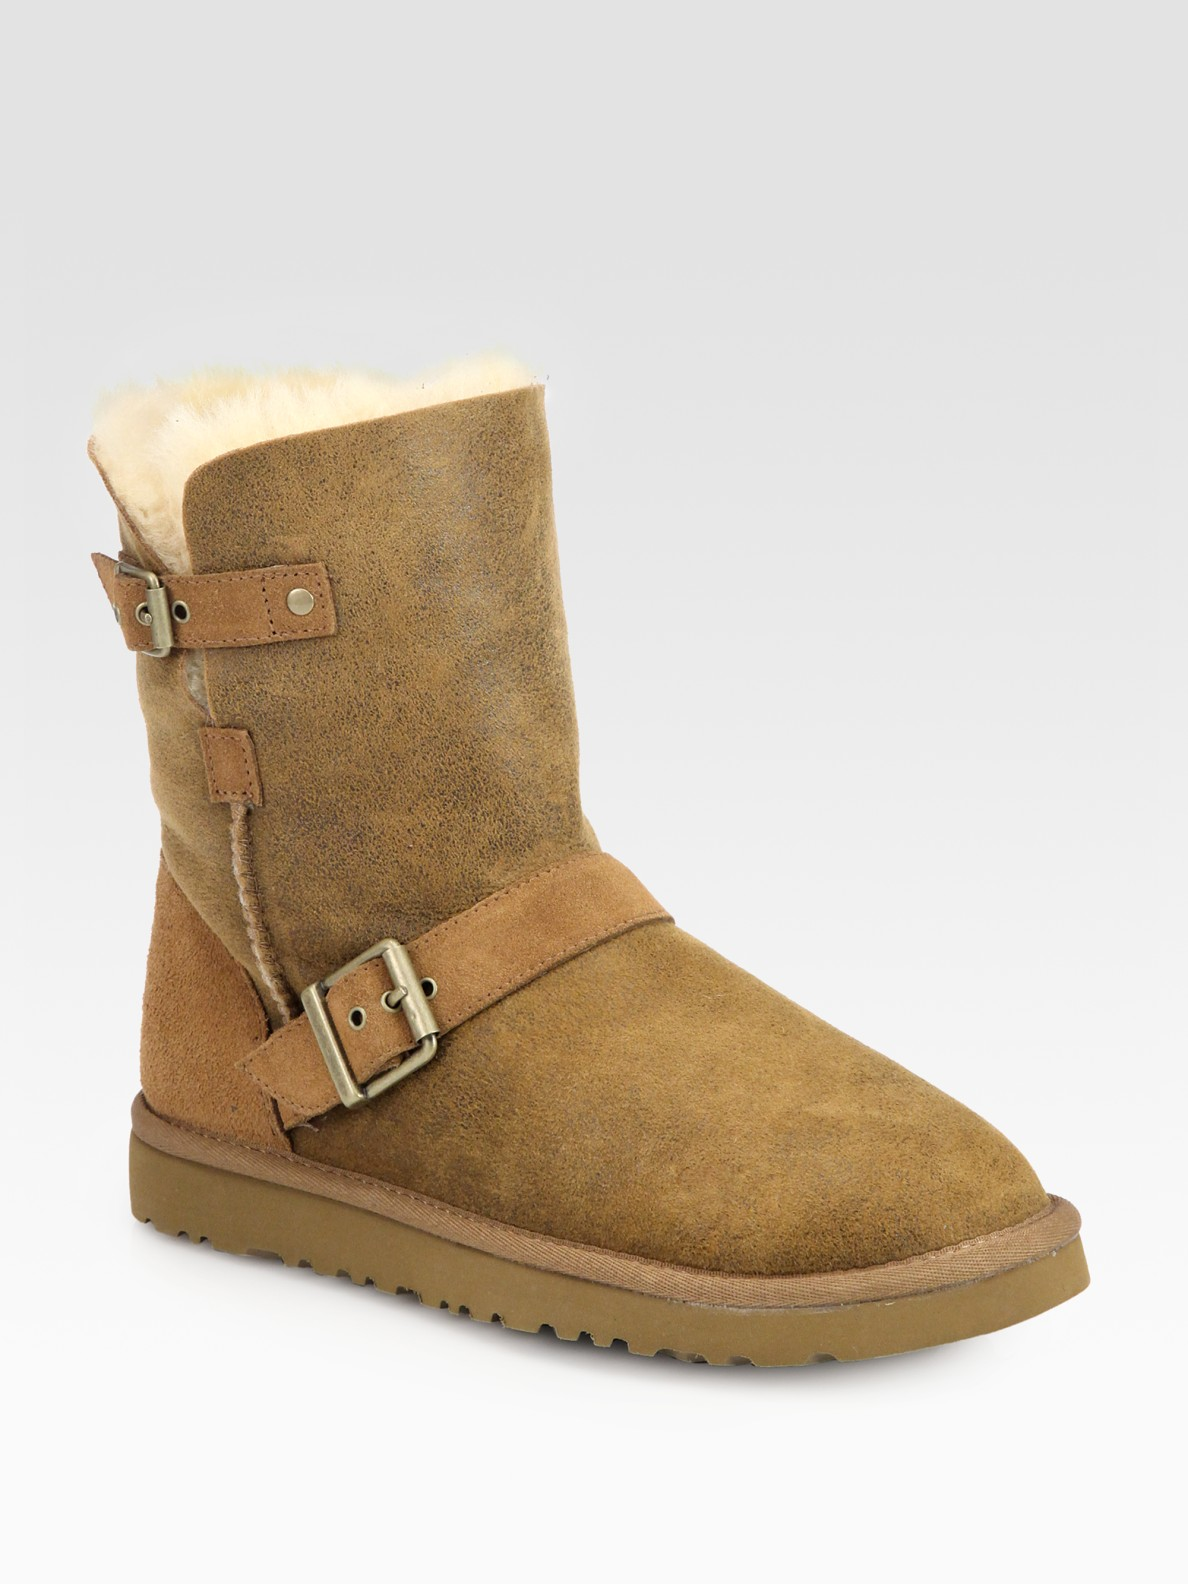 ugg classic short dylyn suede boots in brown chestnut lyst. Black Bedroom Furniture Sets. Home Design Ideas